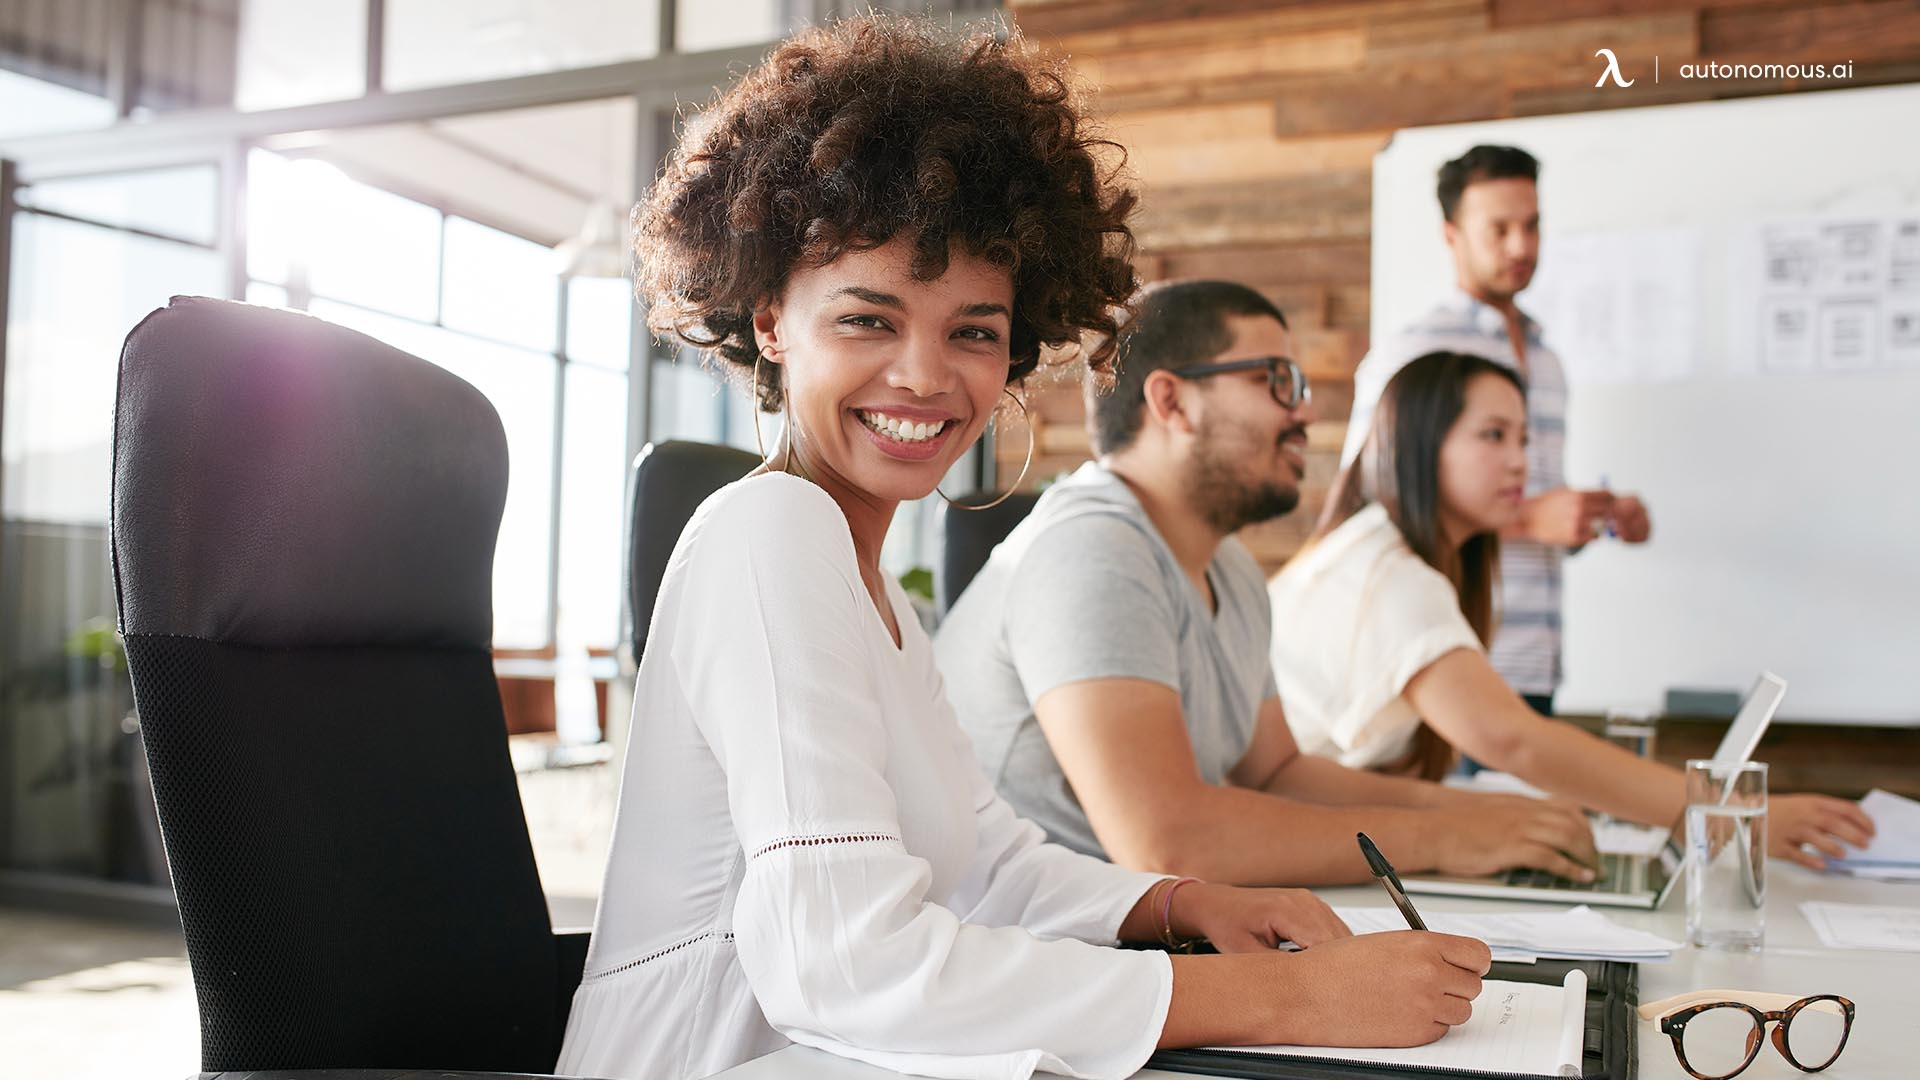 Pros and Cons of Having Gen Z in Workplace